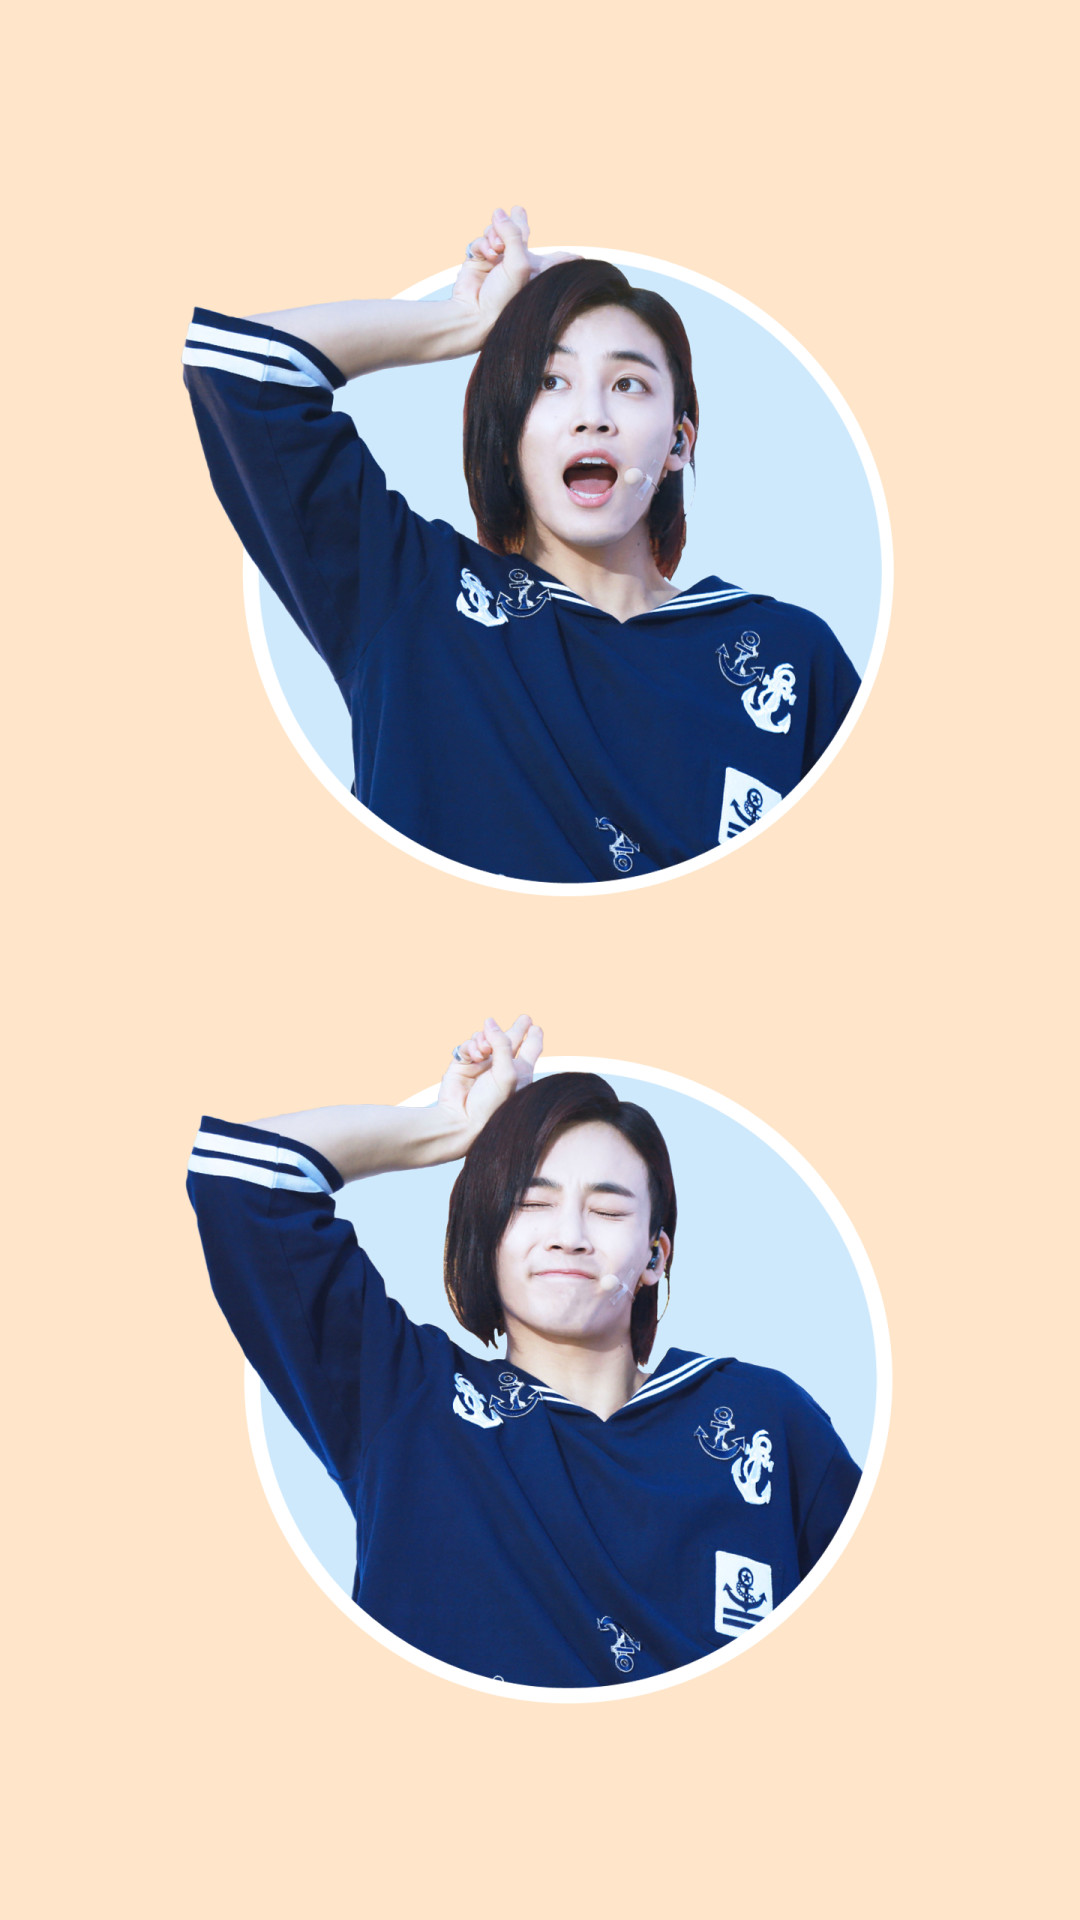 1080x1920 jeonghan wallpaper jeonghan lockscreen kpop wallpaper kpop lockscreen seventeen  wallpaper seventeen lockscreen jeonghan seventeen happy jeonghan